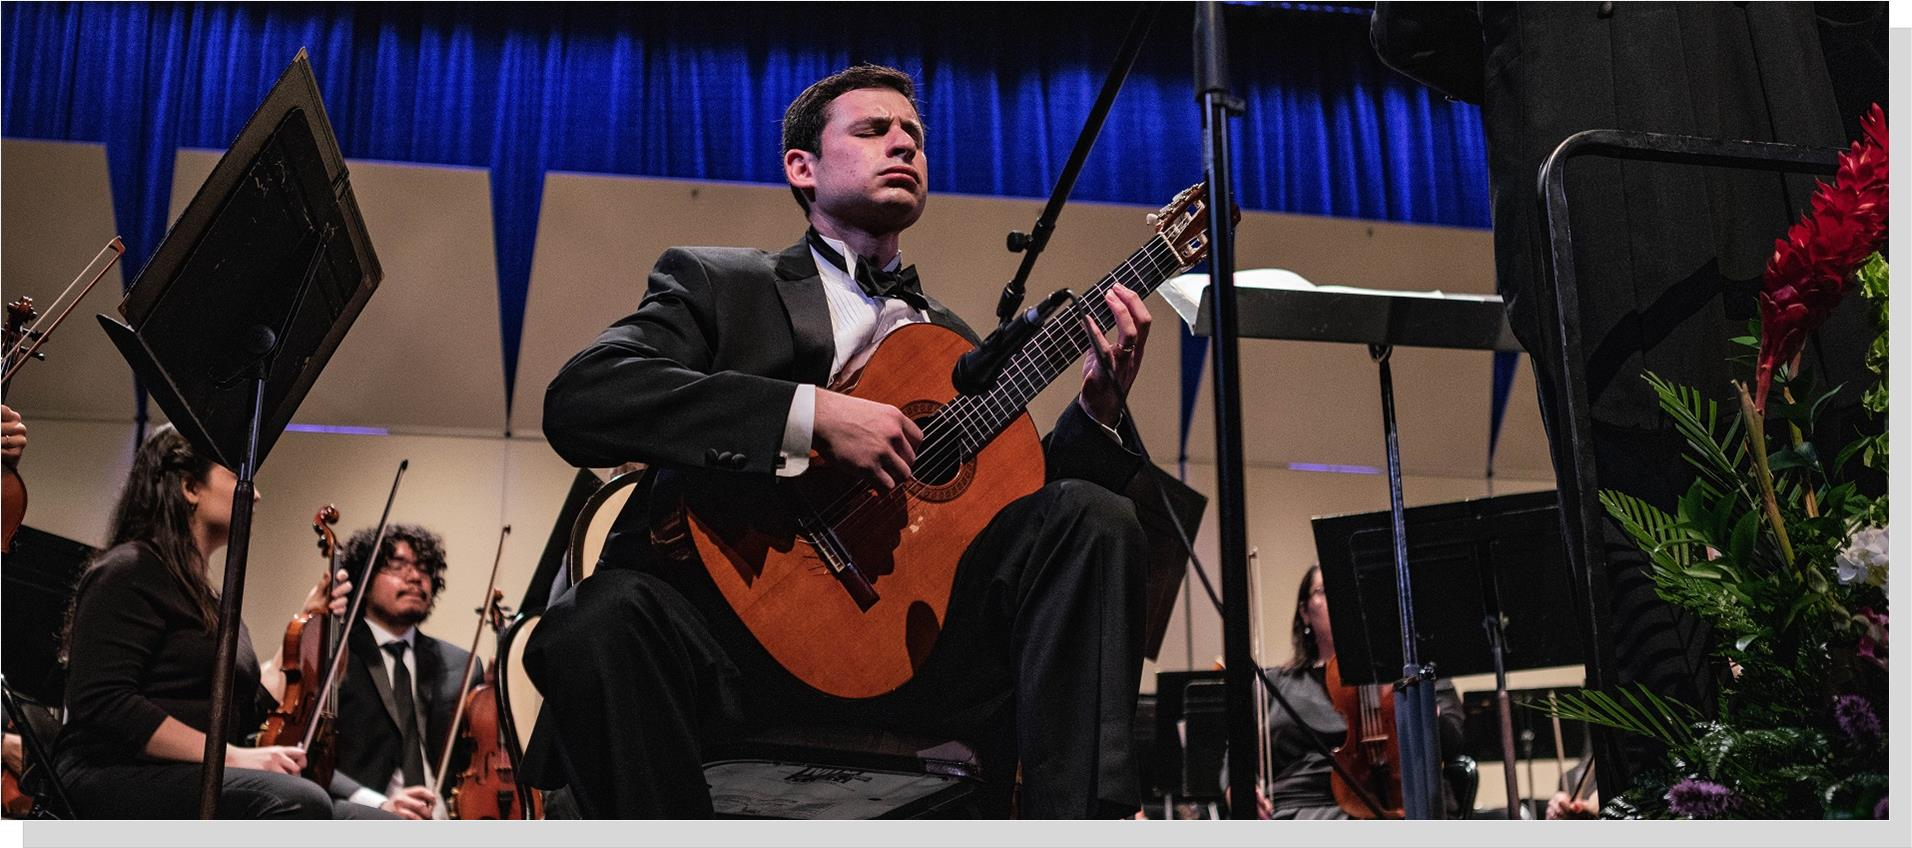 Matthew Trkula guitar performs with the NOVA Annandale Symphony Orchestra